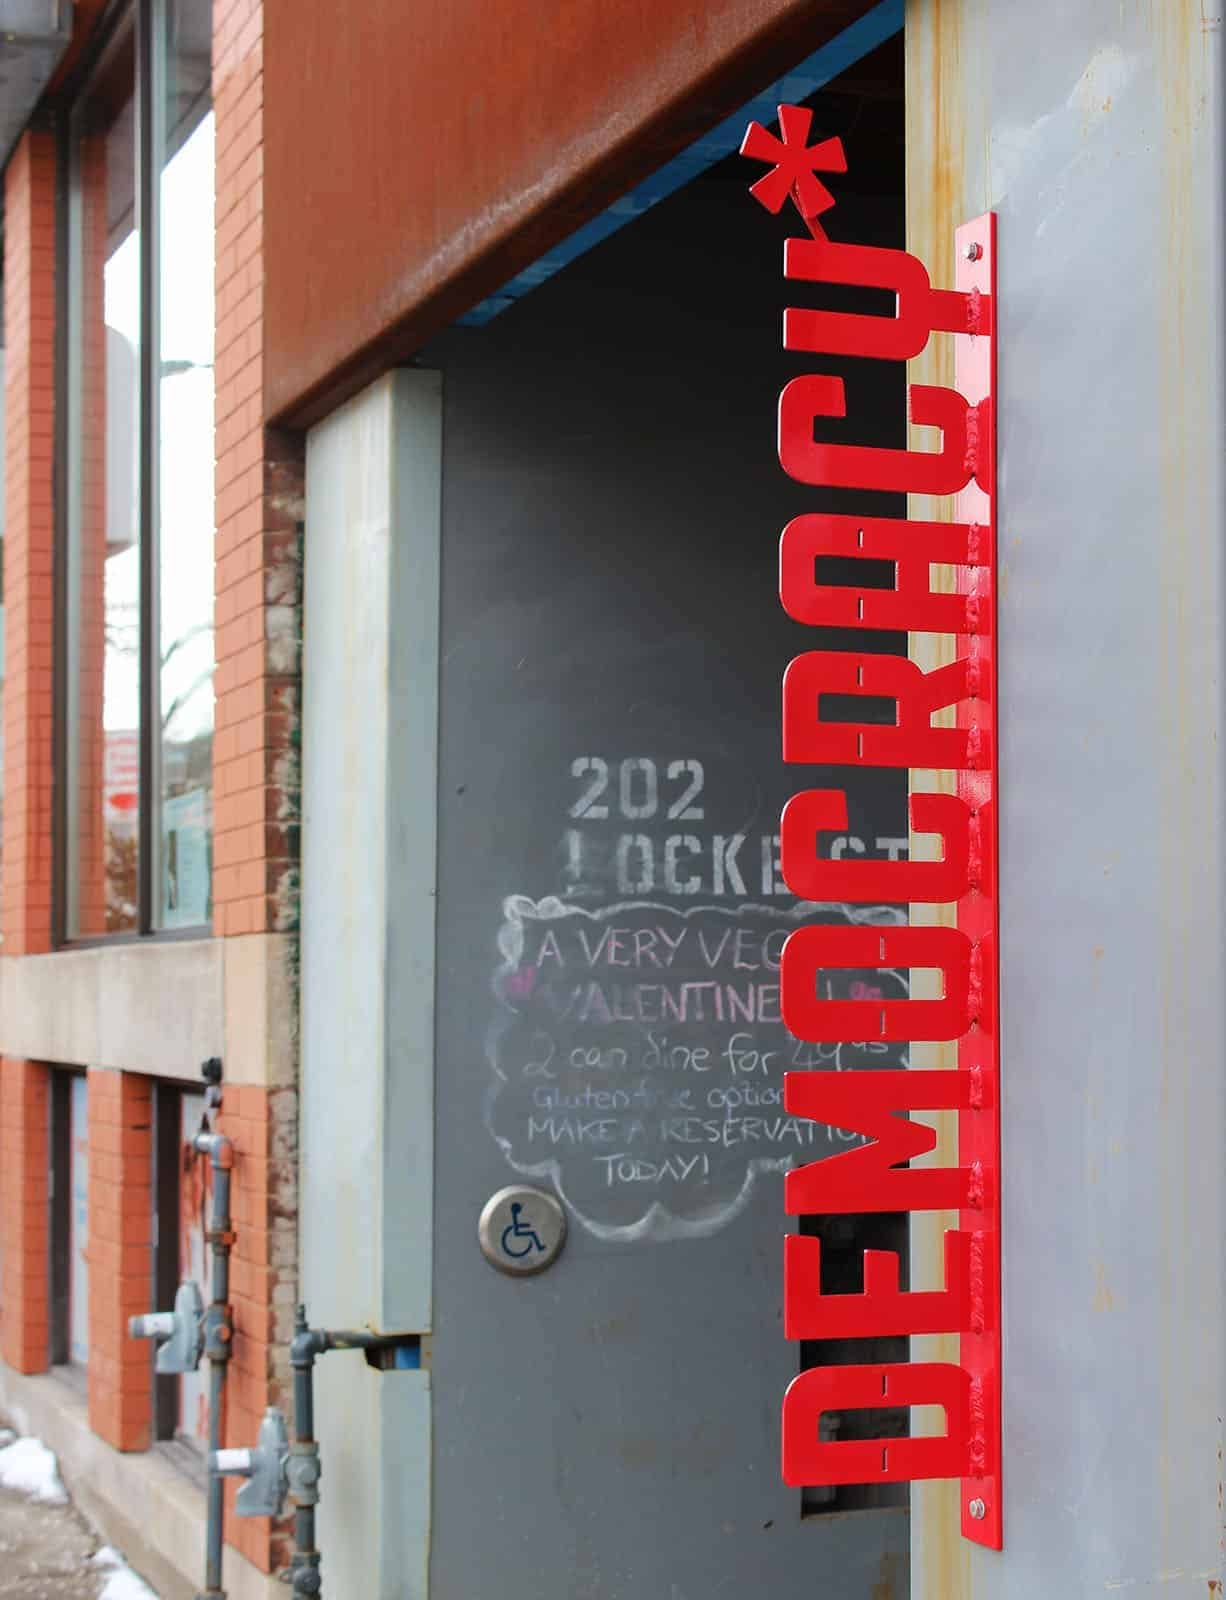 Democracy Coffee House on Locke Street in Hamilton, Ontario, Canada